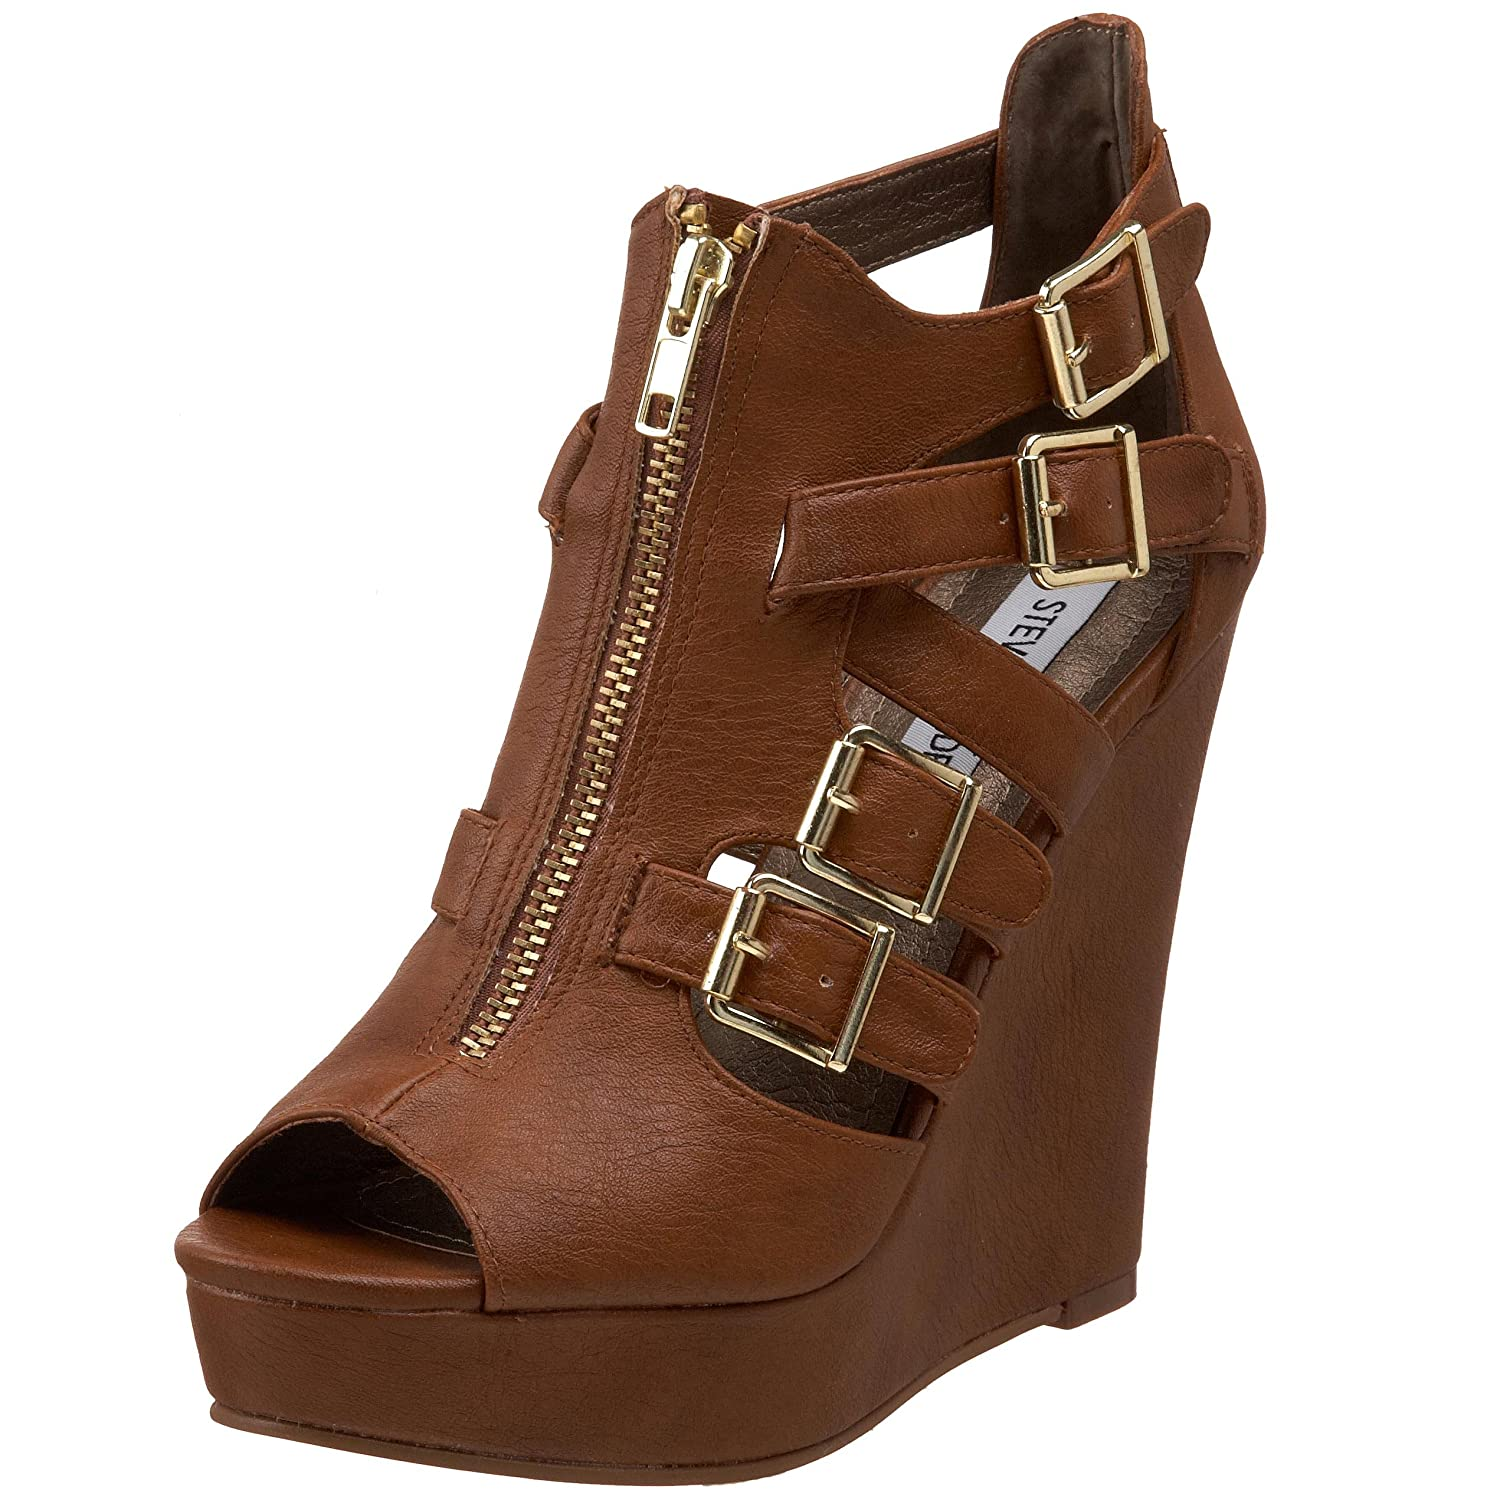 Steve Madden - Trackks Wedge Sandal from endless.com